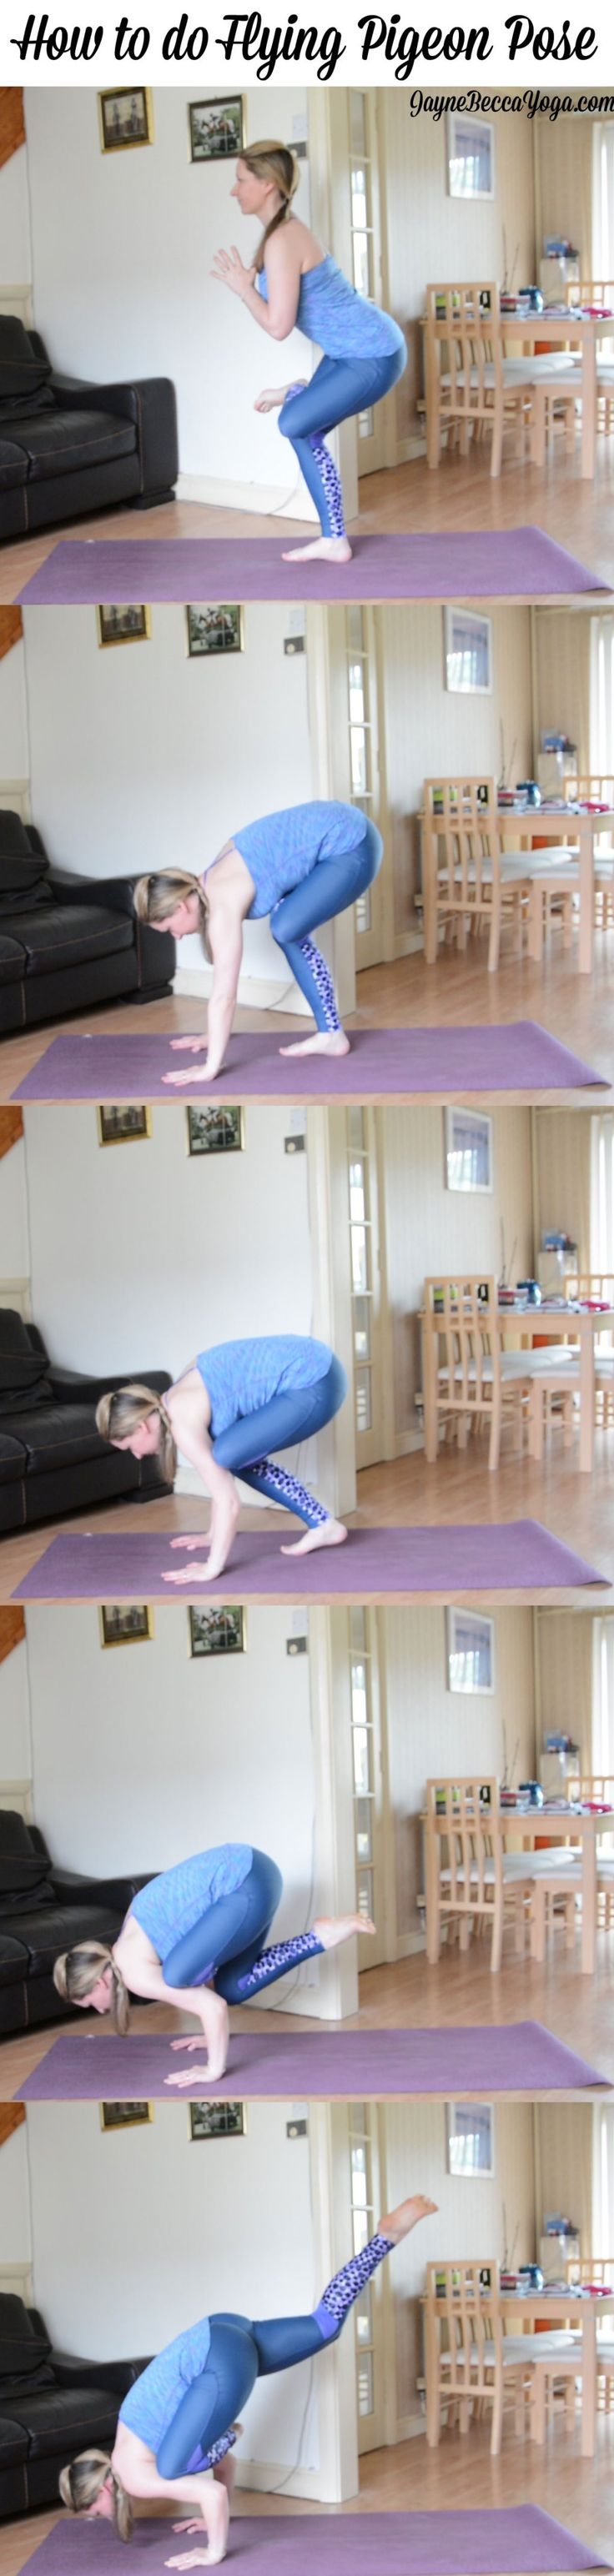 How to do Flying Pigeon Pose - Jayne Becca Yoga